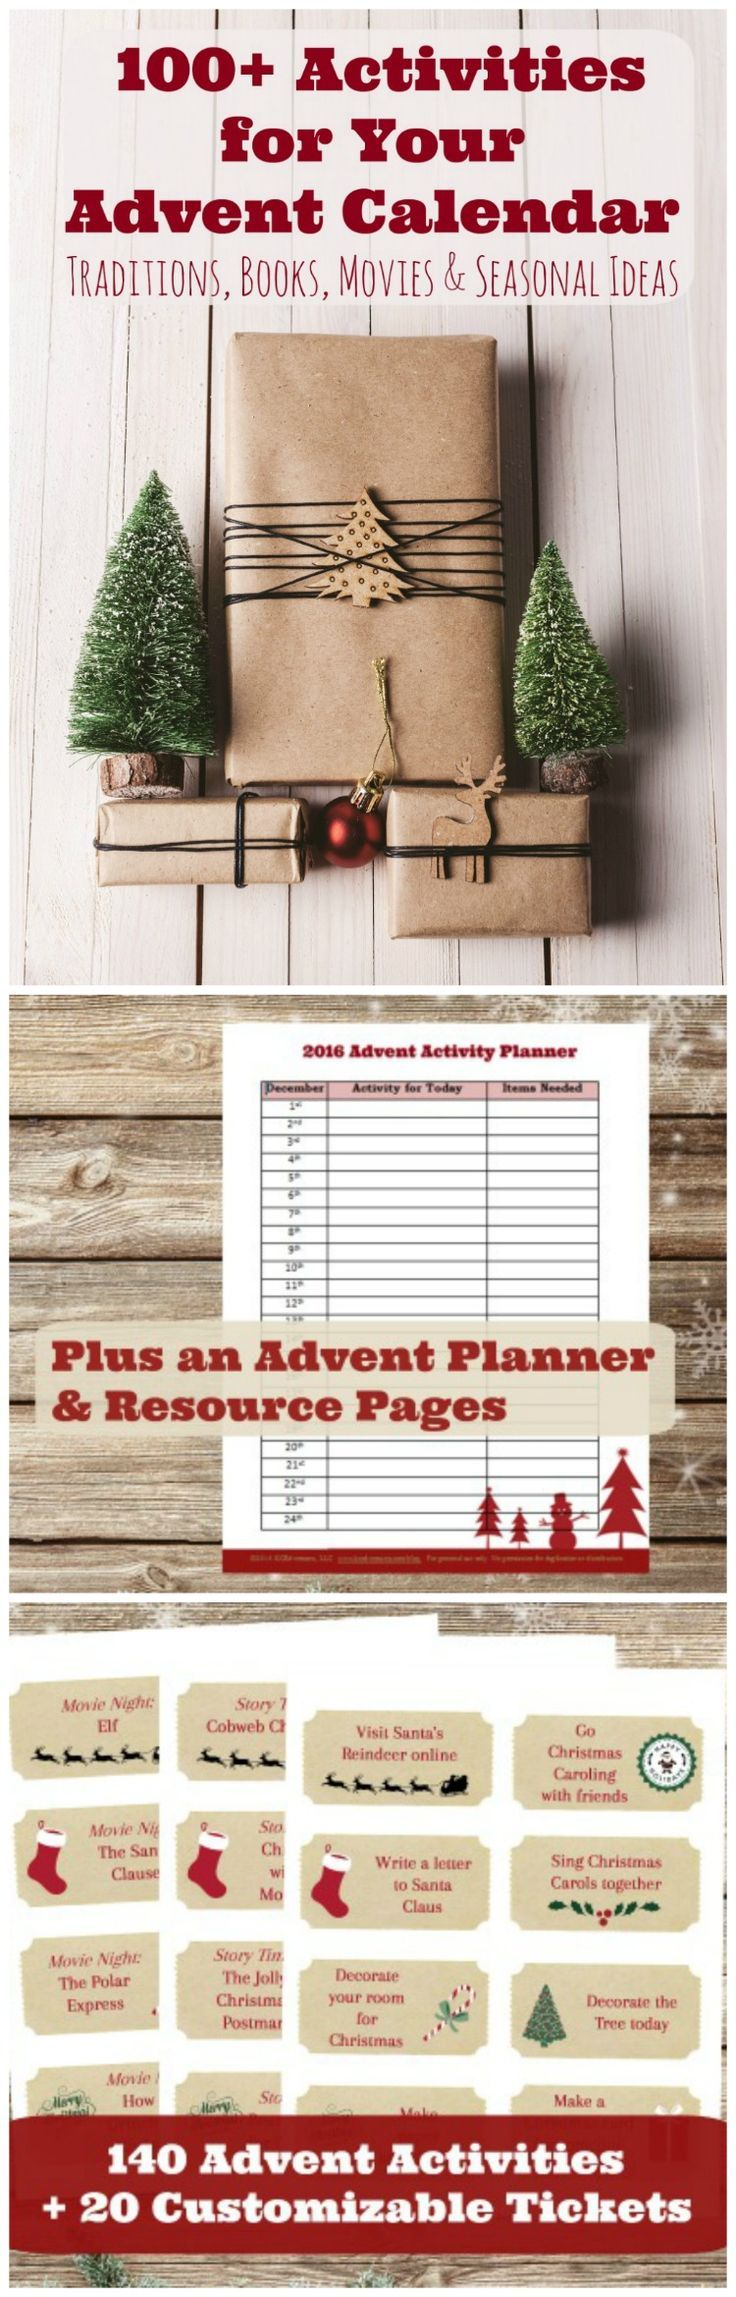 100+ Printable Advent Calendar Ideas & Christmas Countdown Activities